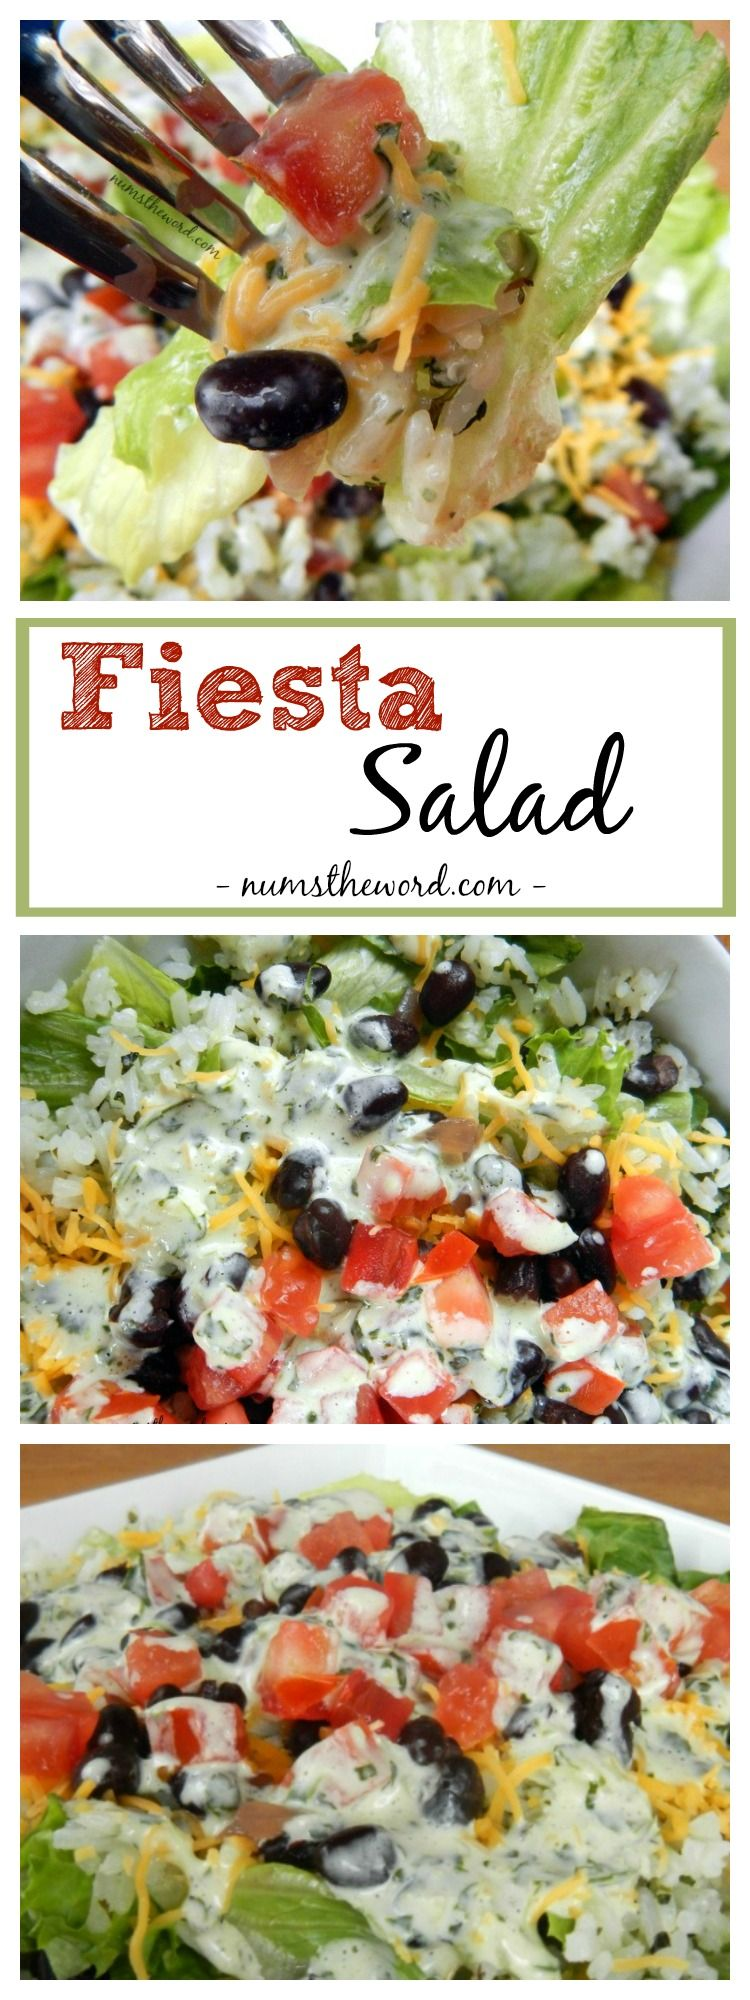 This Easy Fiesta Salad can be whipped up in minutes. It's a light salad that is also filling. Enjoy it as it is or add shredded chicken for a complete meal!